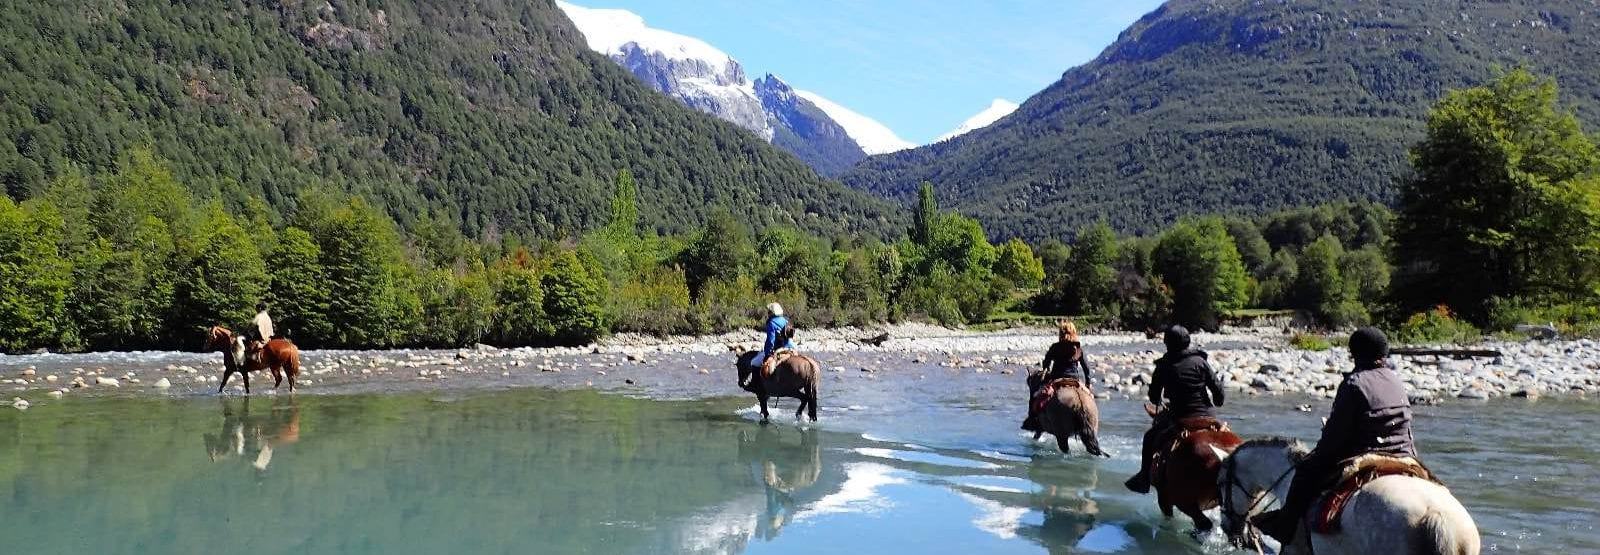 Horse Ride Across the Andes _7_